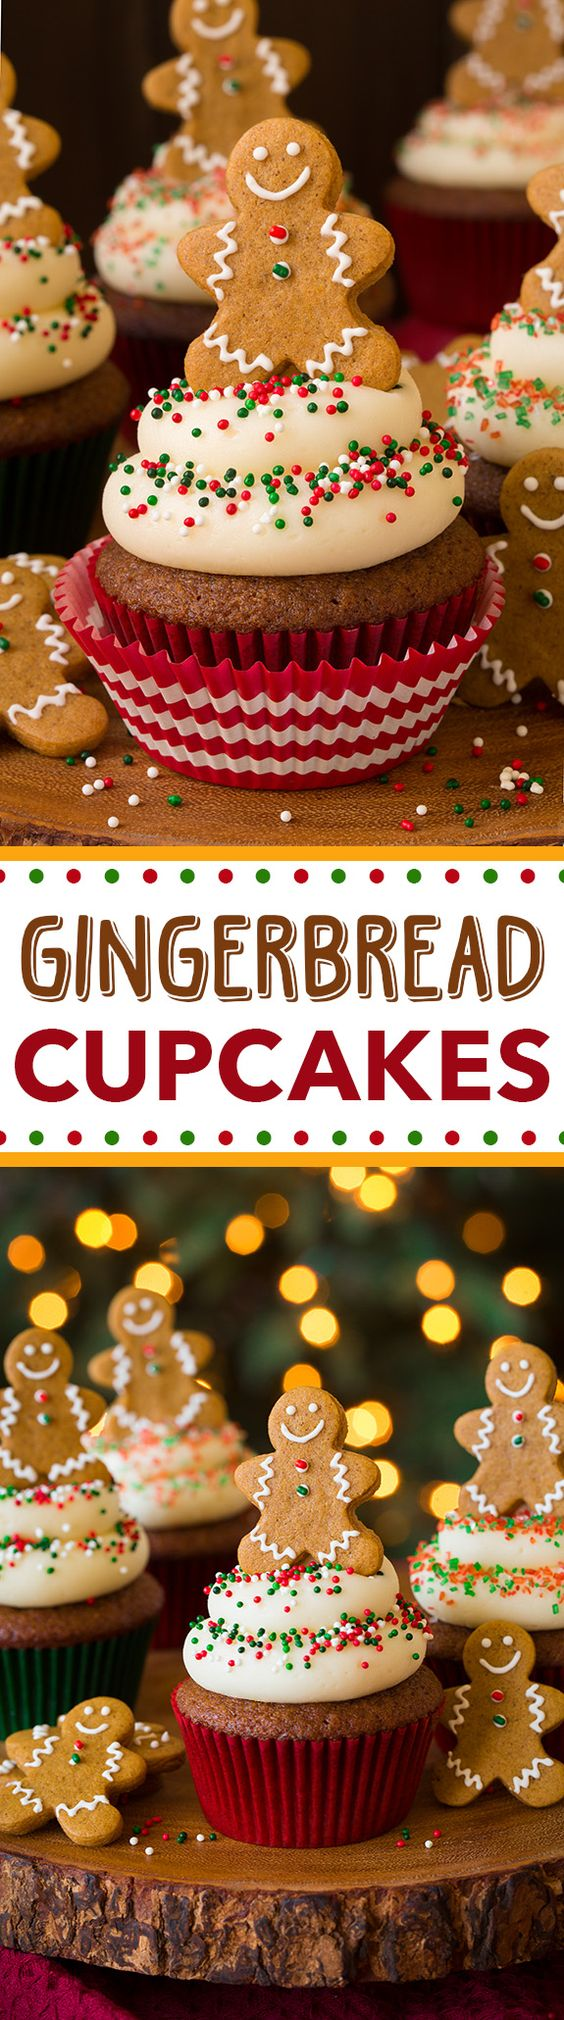 Gingerbread Cupcakes with Cream Cheese Frosting - such a fun cupcake ...